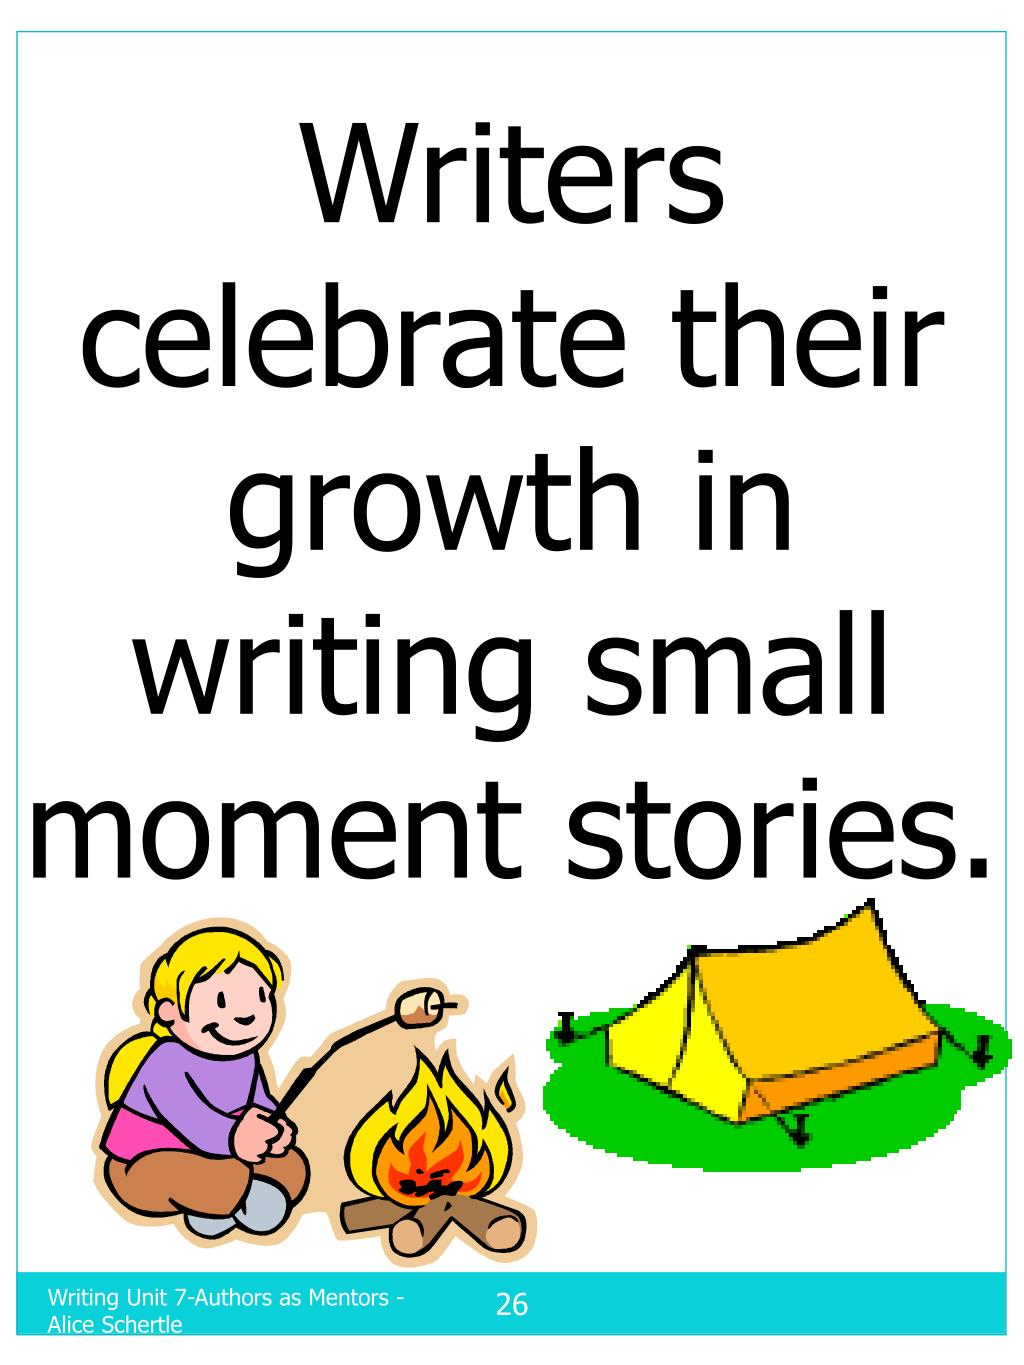 Writers celebrate their growth in writing small moment stories.